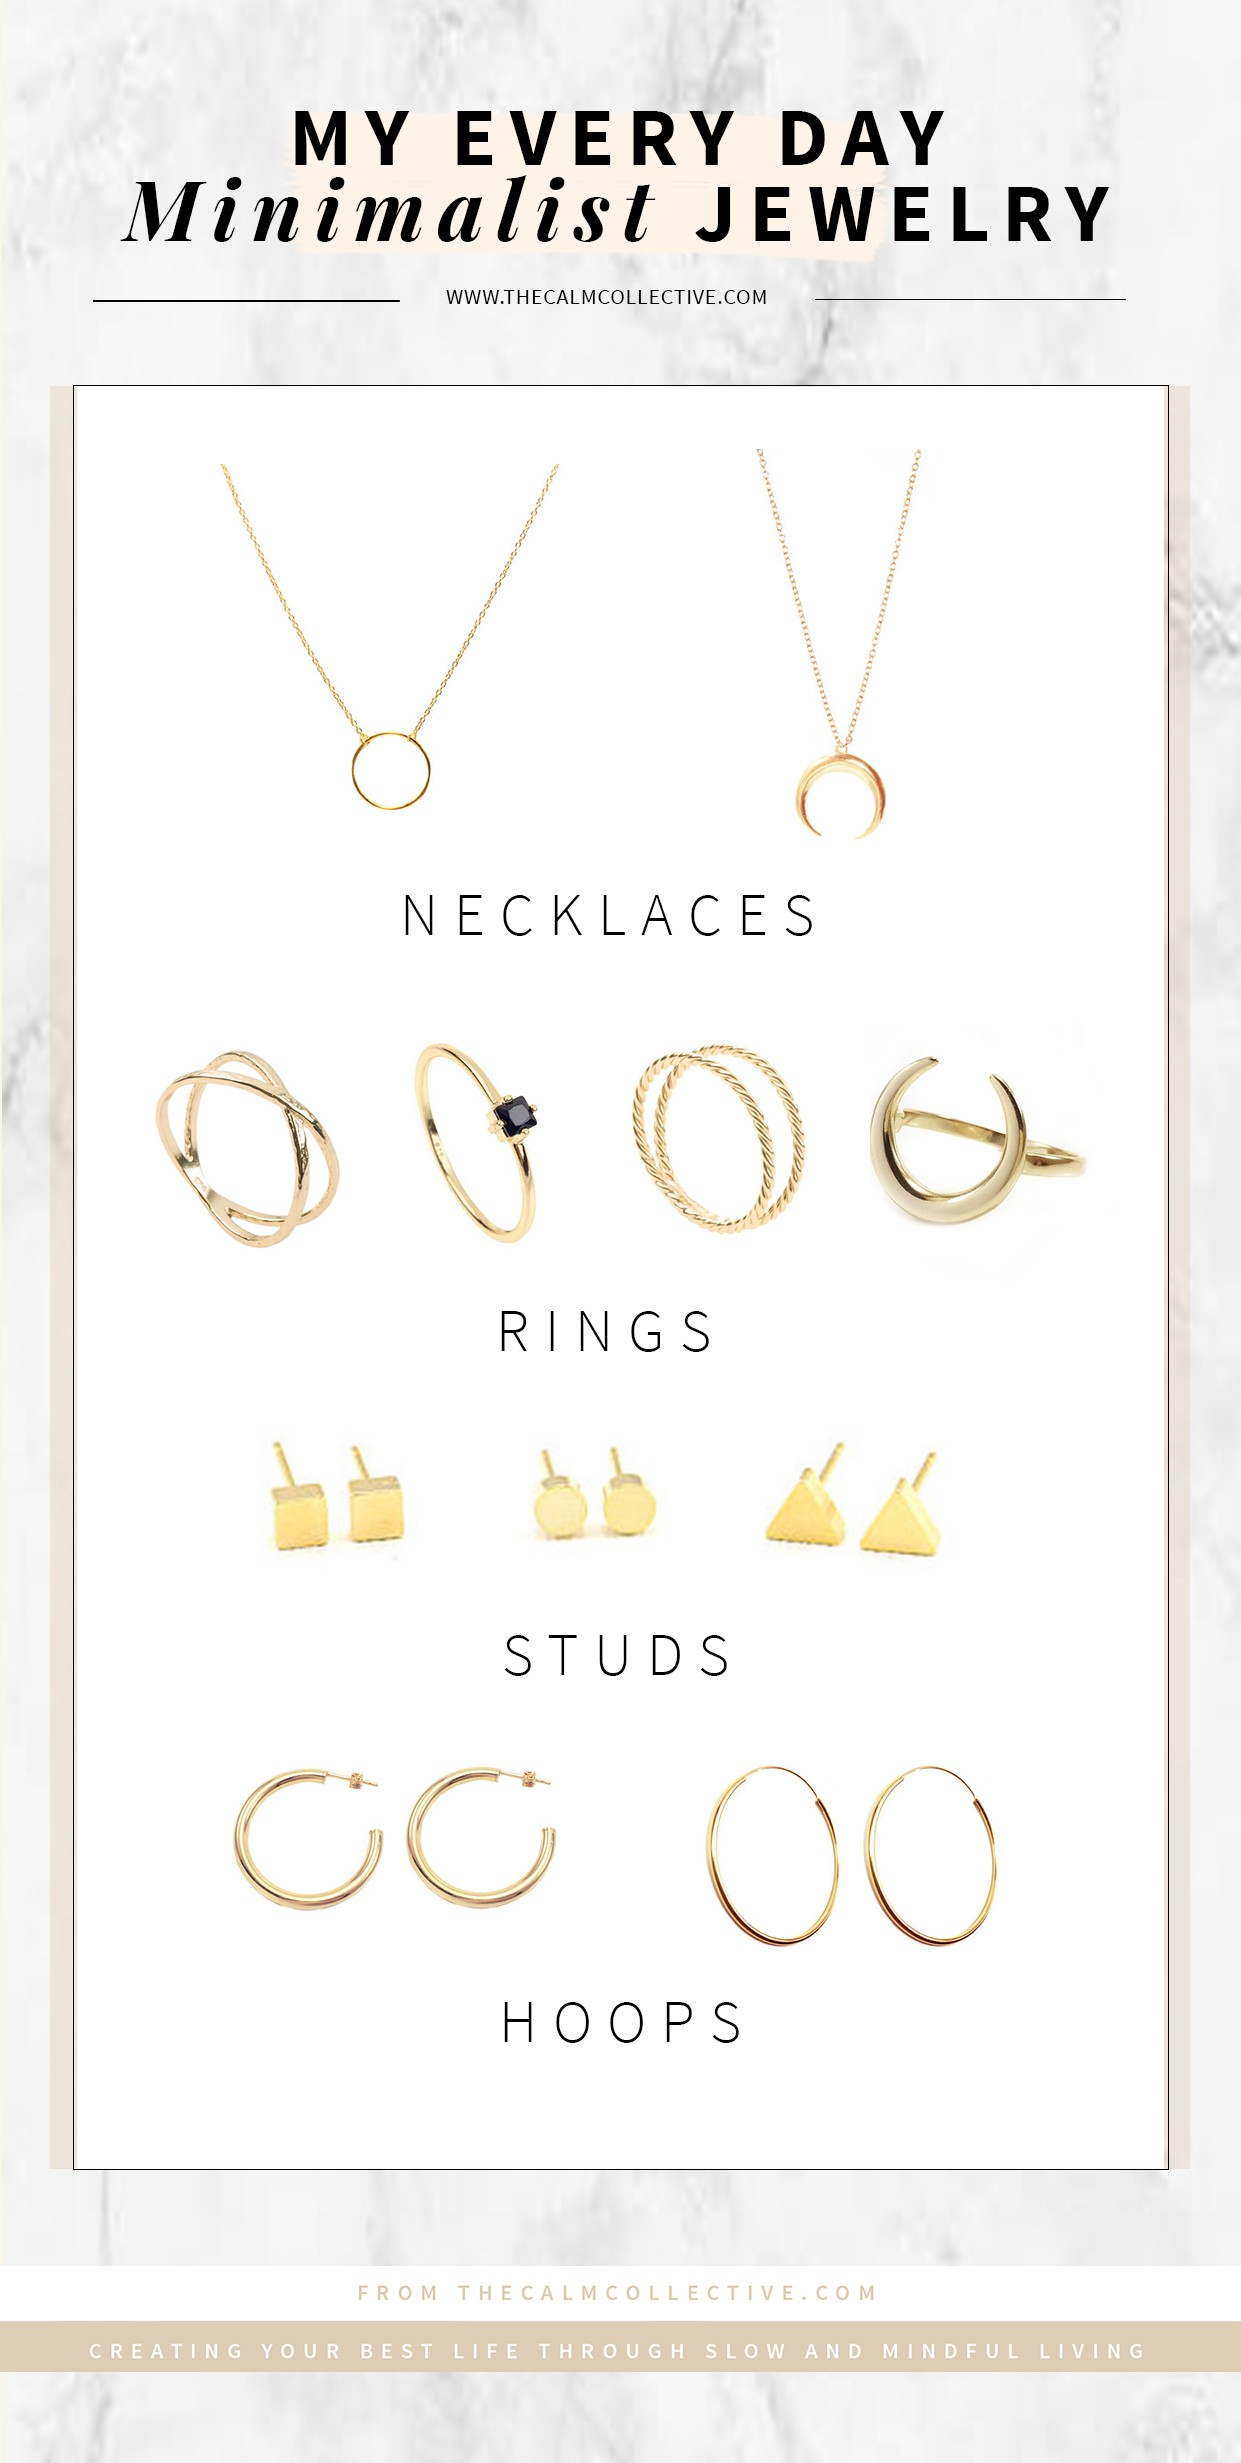 My Every Day Minimalist Jewelry Click The To View